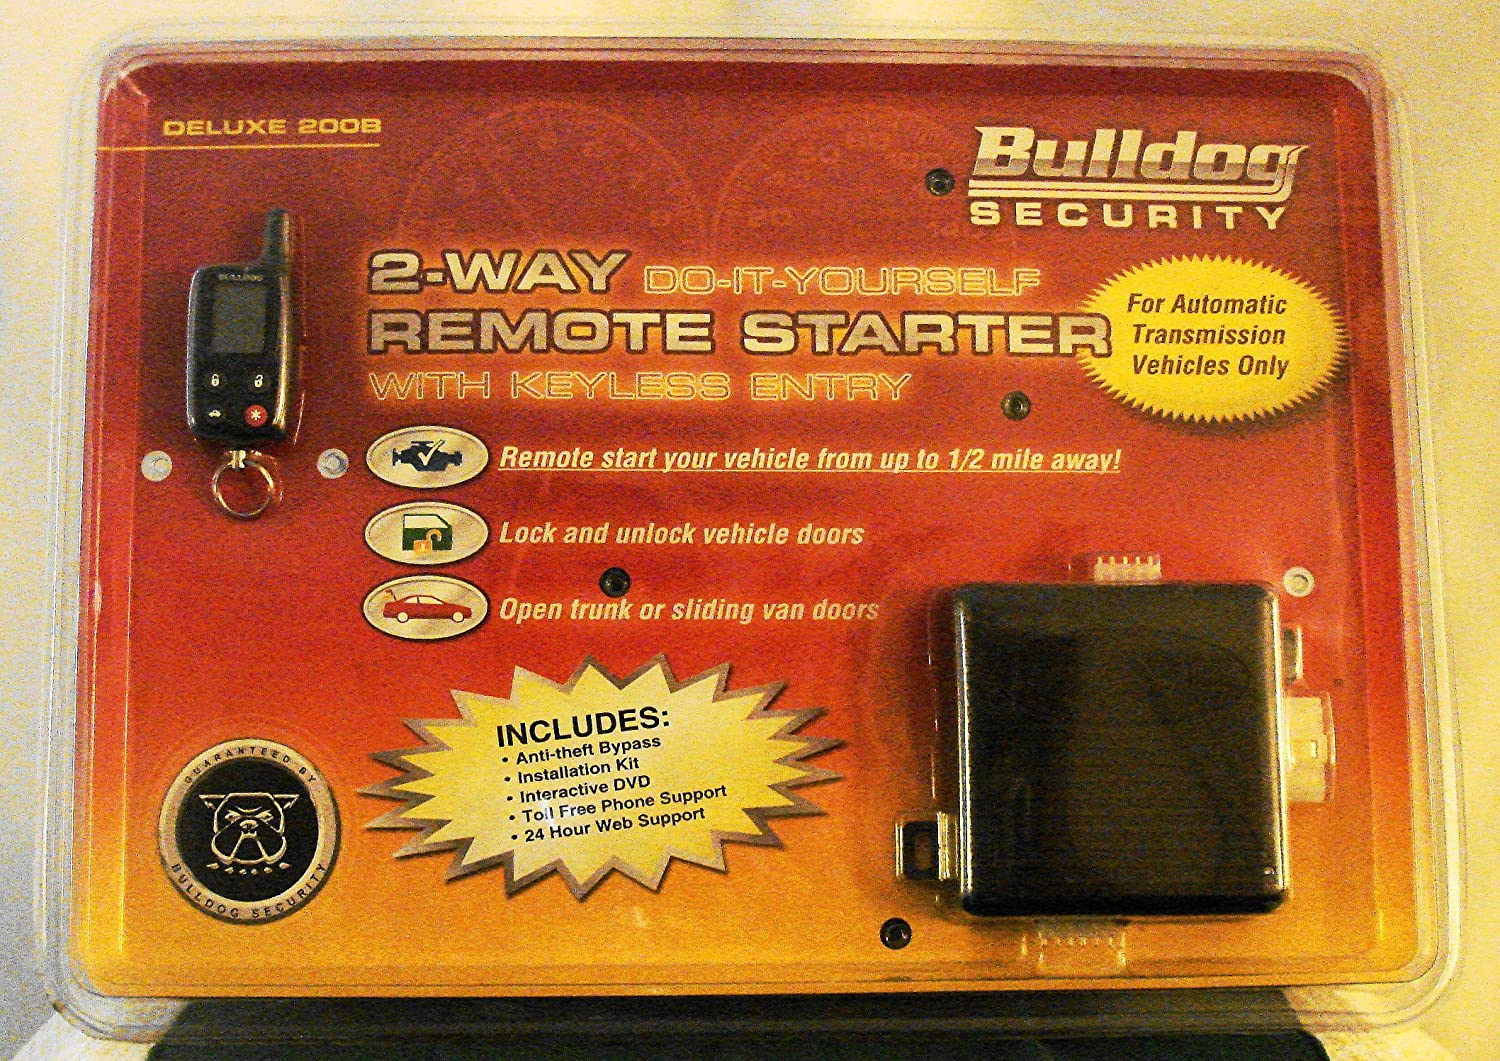 Wonderful Bulldog Security Remote Starter With Keyless Entry Huge Super Switch Wiring Shaped Security Bulldog Ibanez Dimarzio Youthful Bulldog Alarms Wiring BlackOff Grid Solar Wiring Diagram Amazon.com: Bulldog Security 2 Way Do It Yourself Remote Vehicle ..